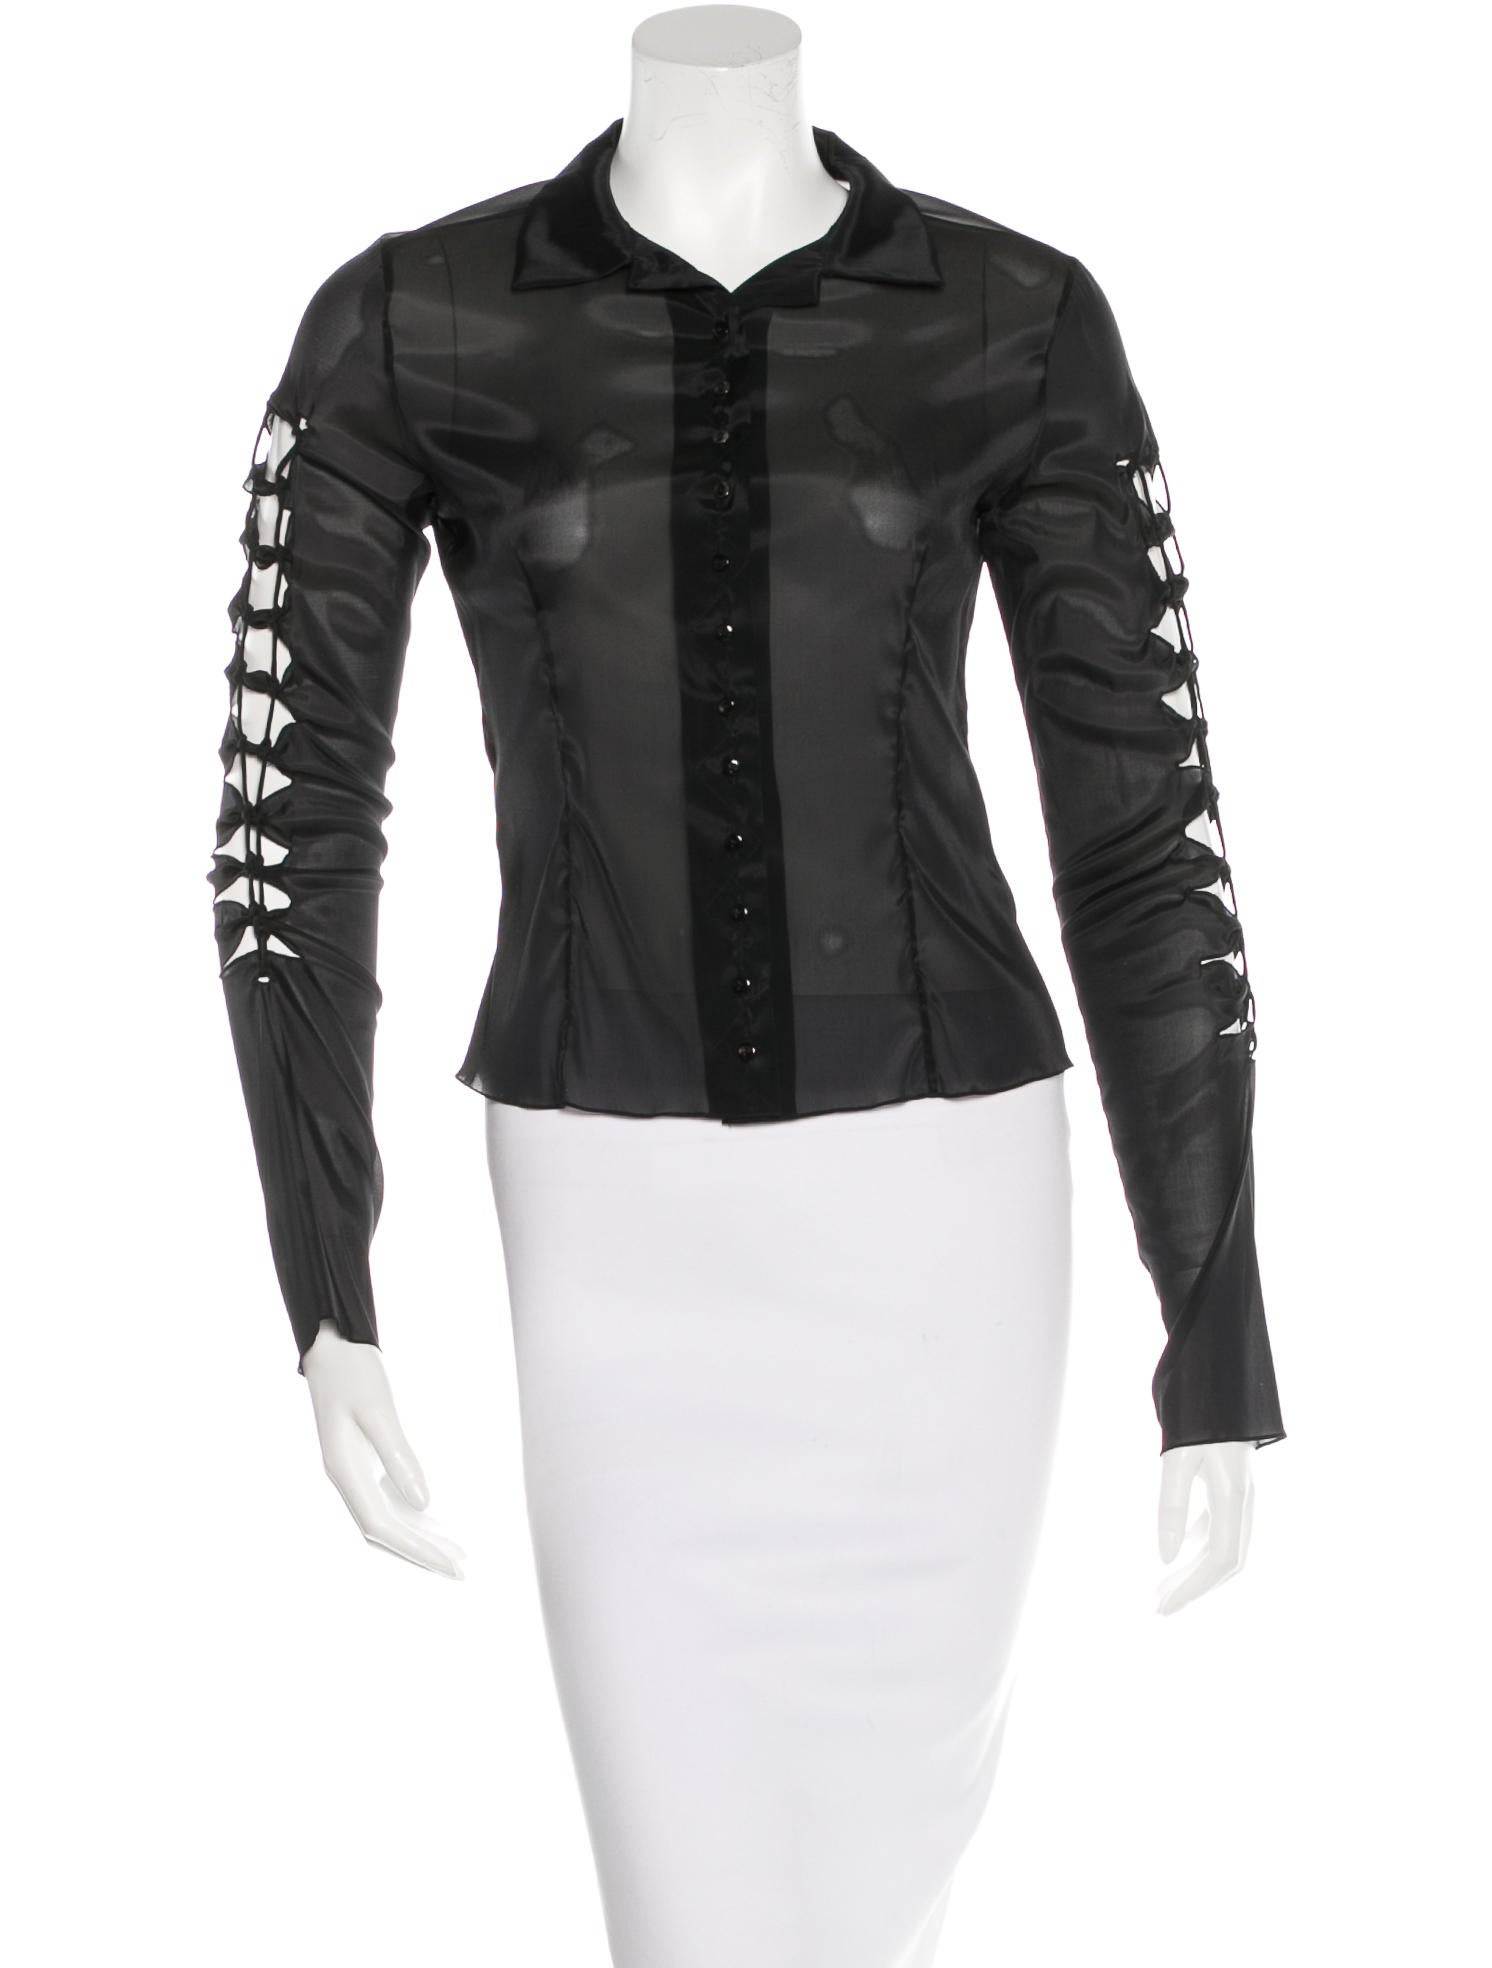 Christian dior cutout button up top clothing chr45234 for Christian dior button up shirt